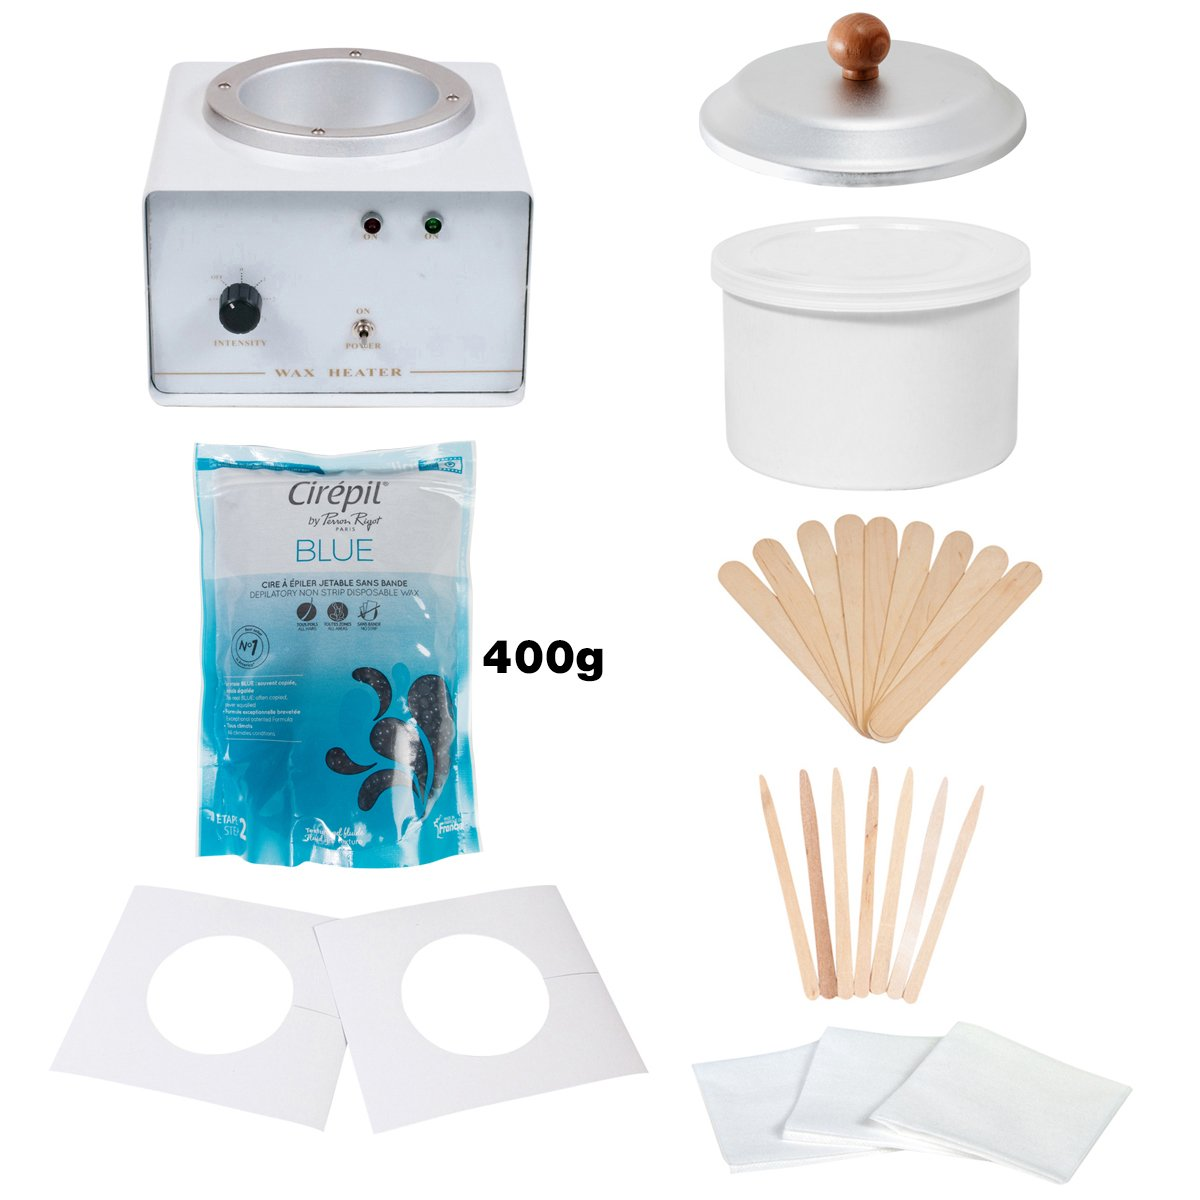 JMT Beauty Wax Warmer Kit, includes Cirepil Blue Bead Wax (400g) and accessories